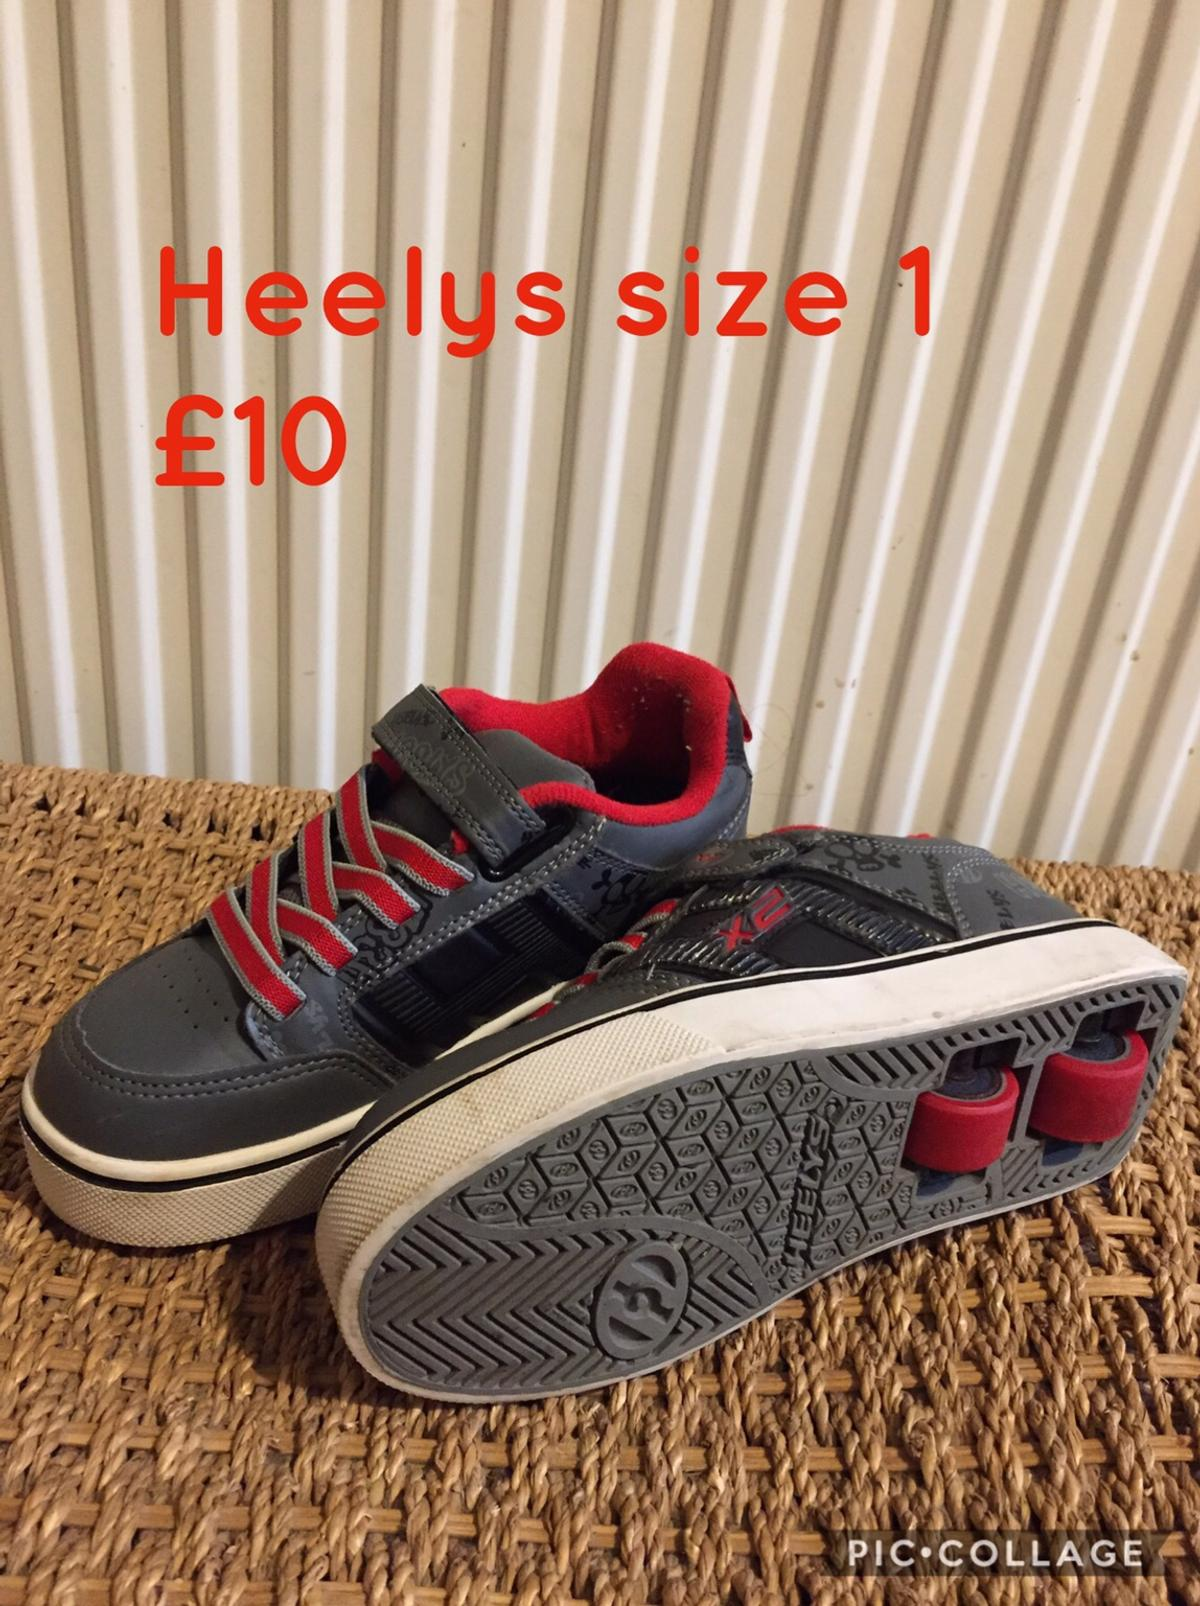 Very good condition Heelys x2 These have two wheels which are easier to balance